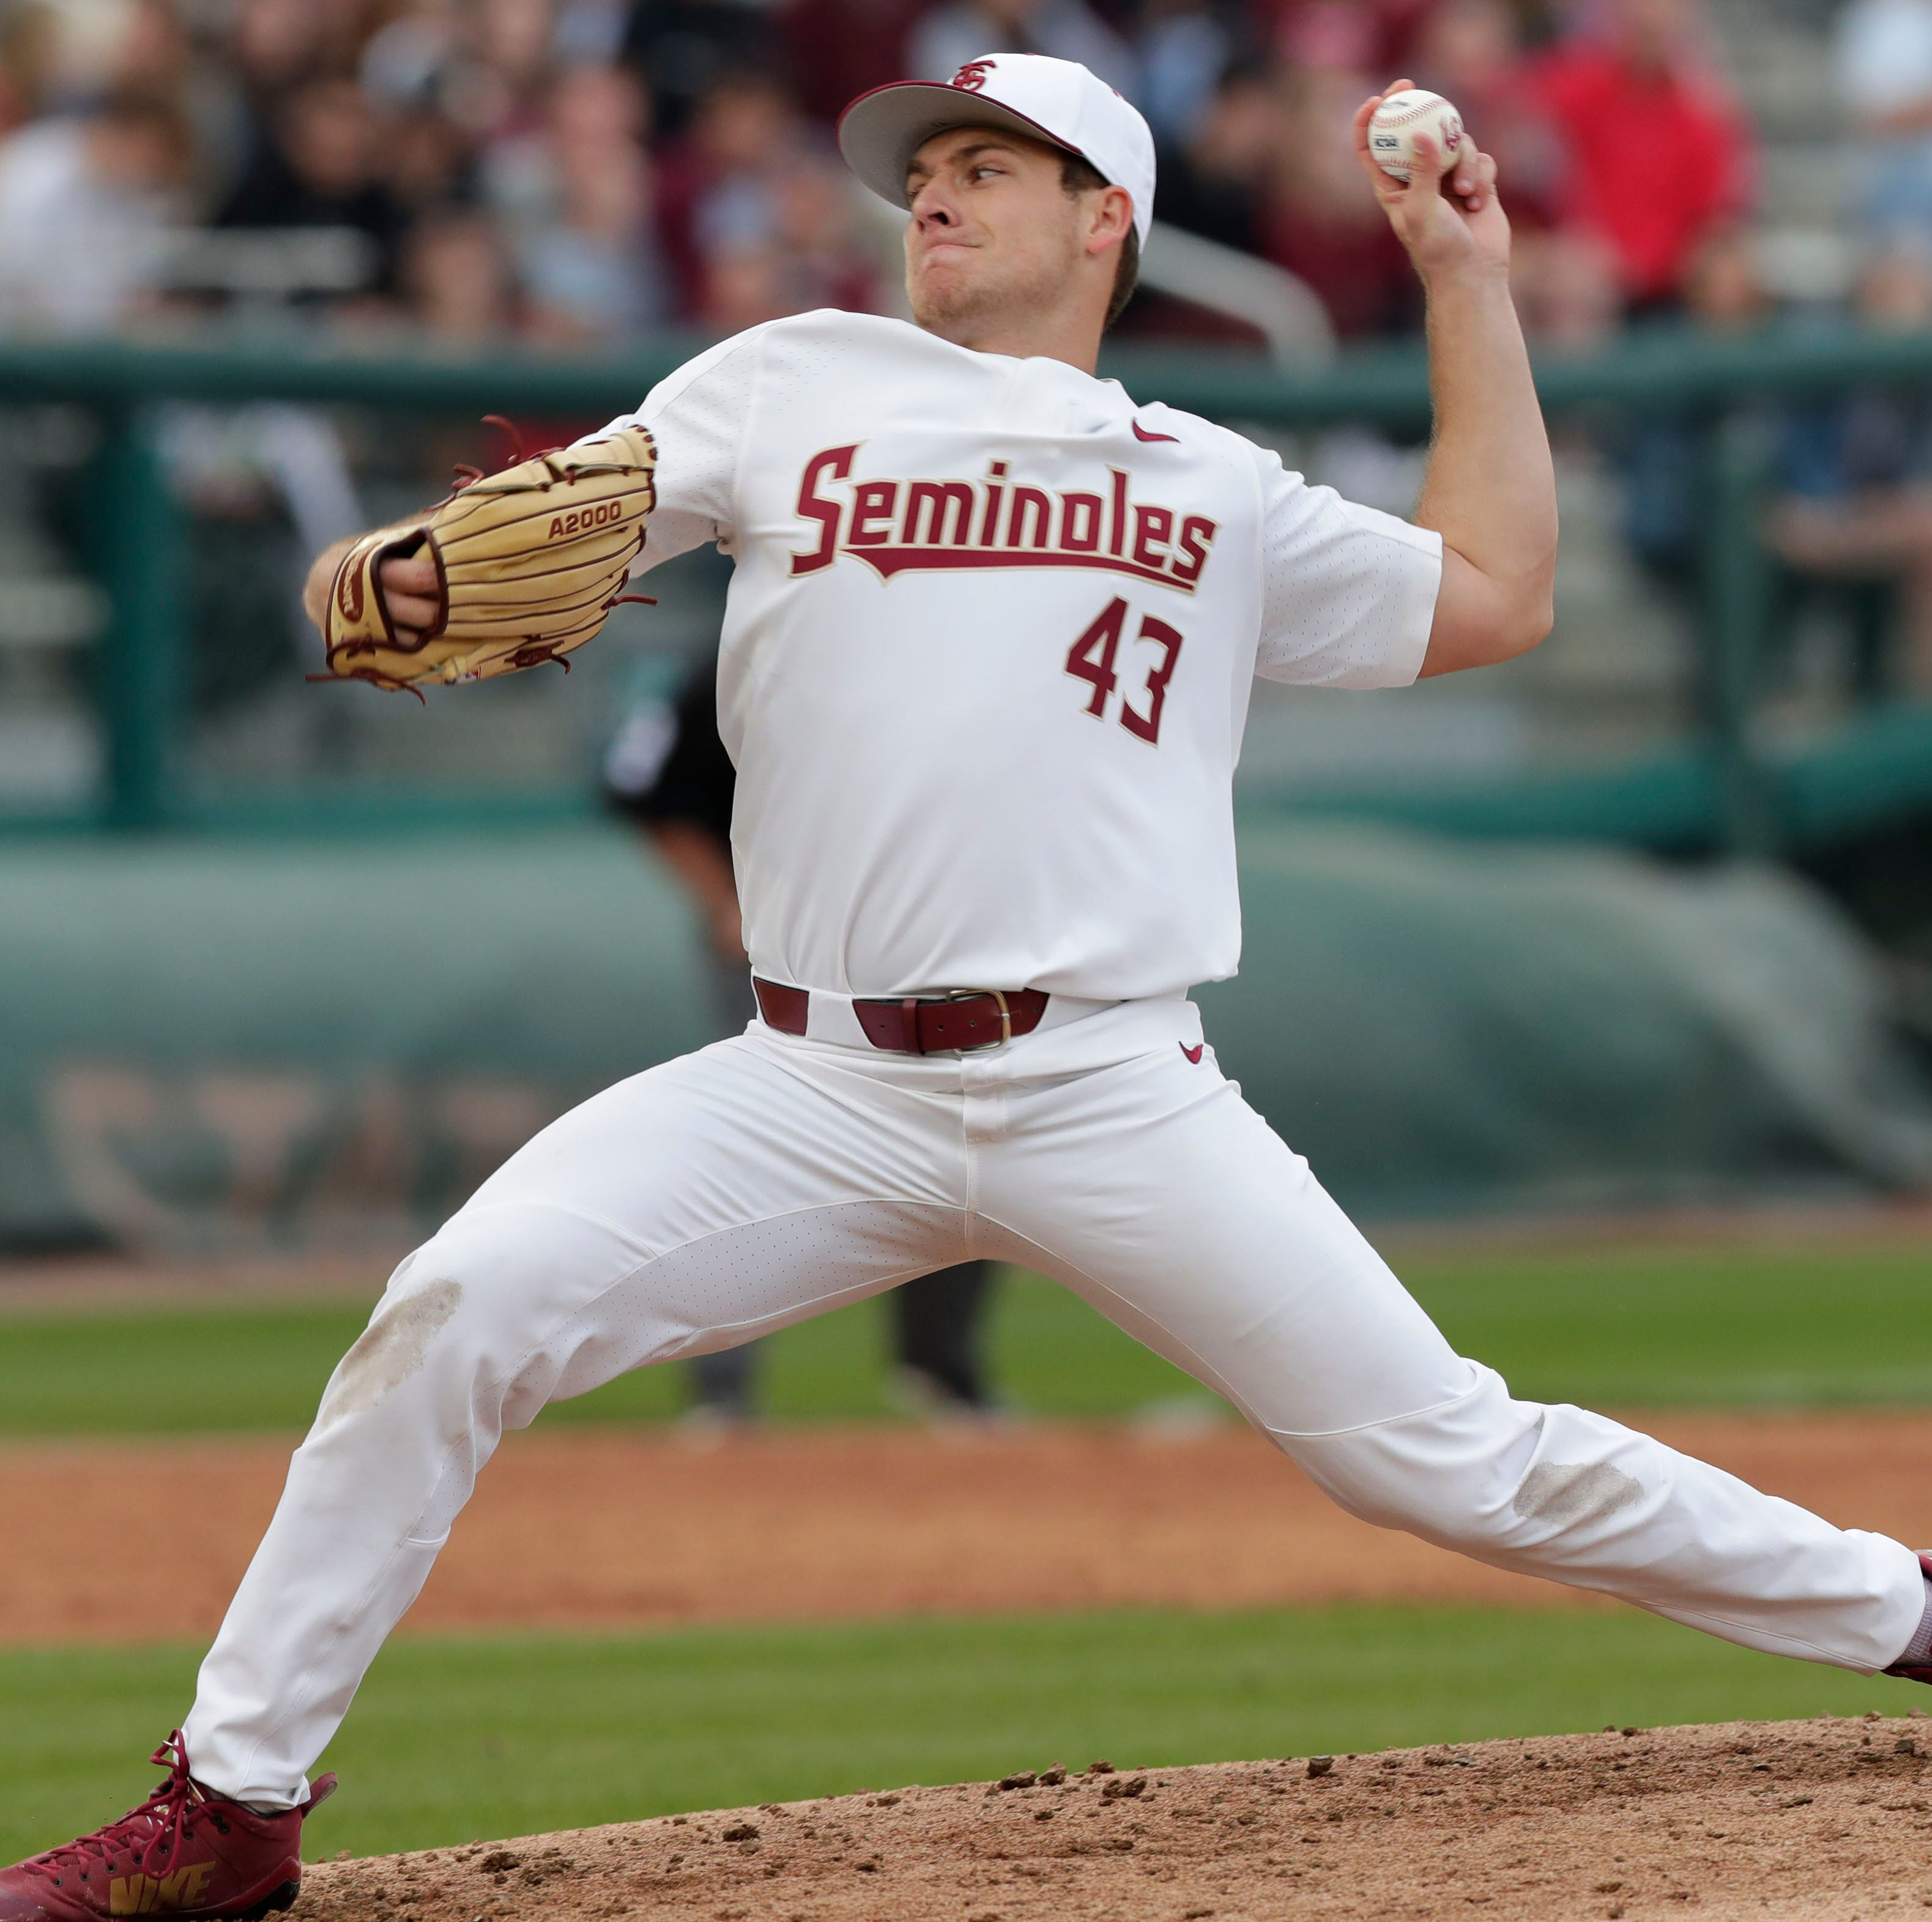 Florida State's misery continues in 11-0 defeat at Miami